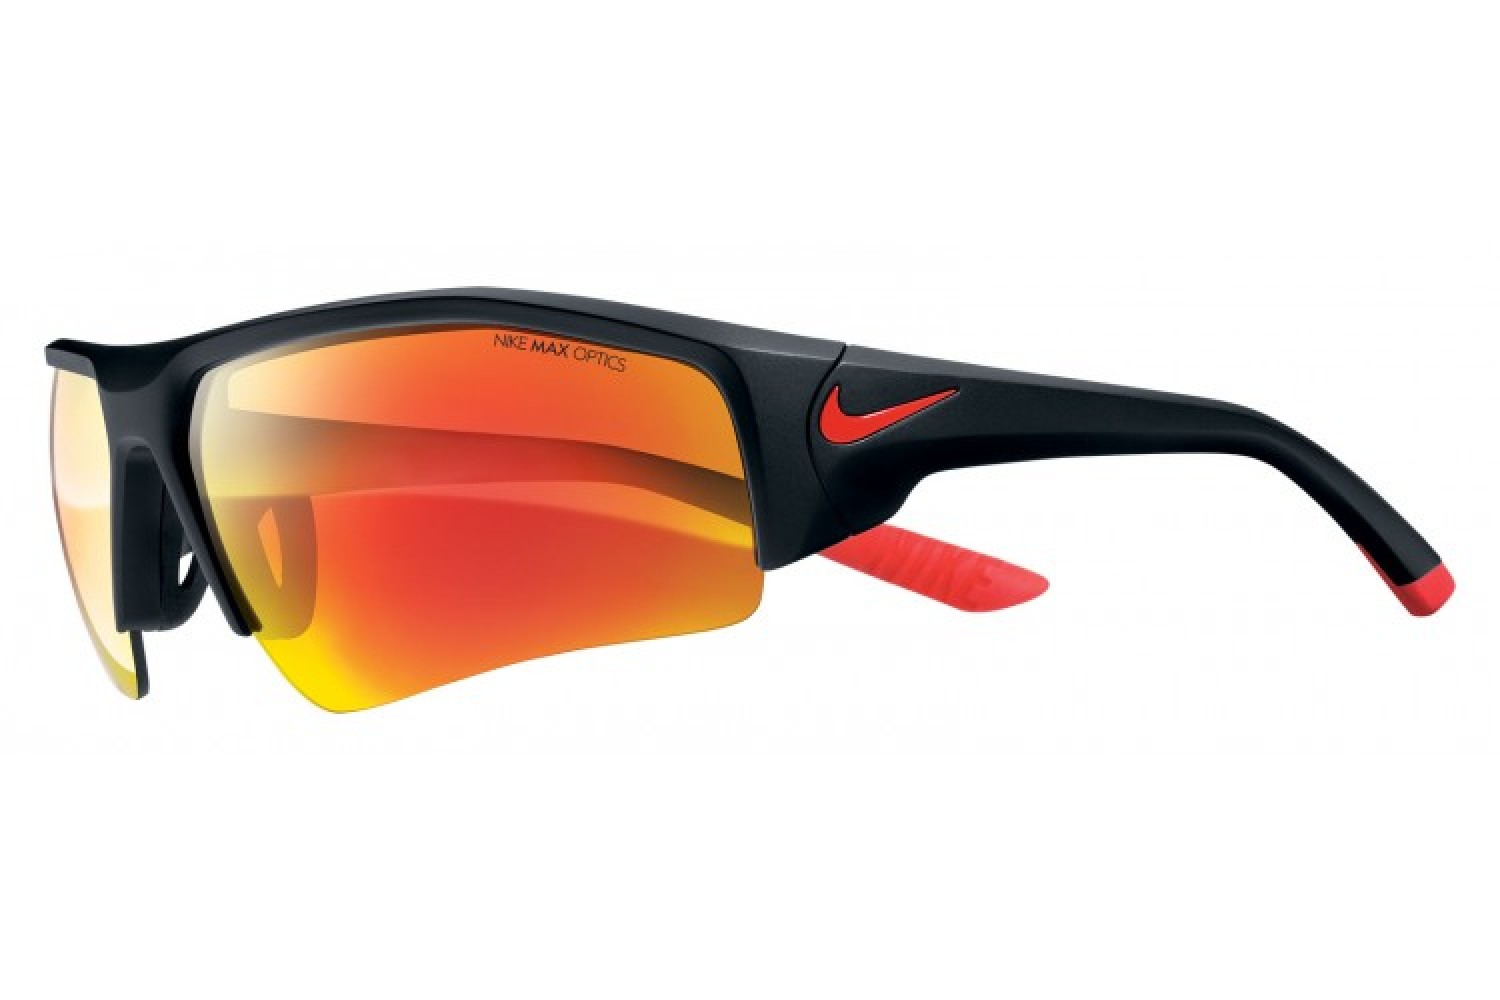 Nike Prescription Sunglasses | ADS Sports Eyewear